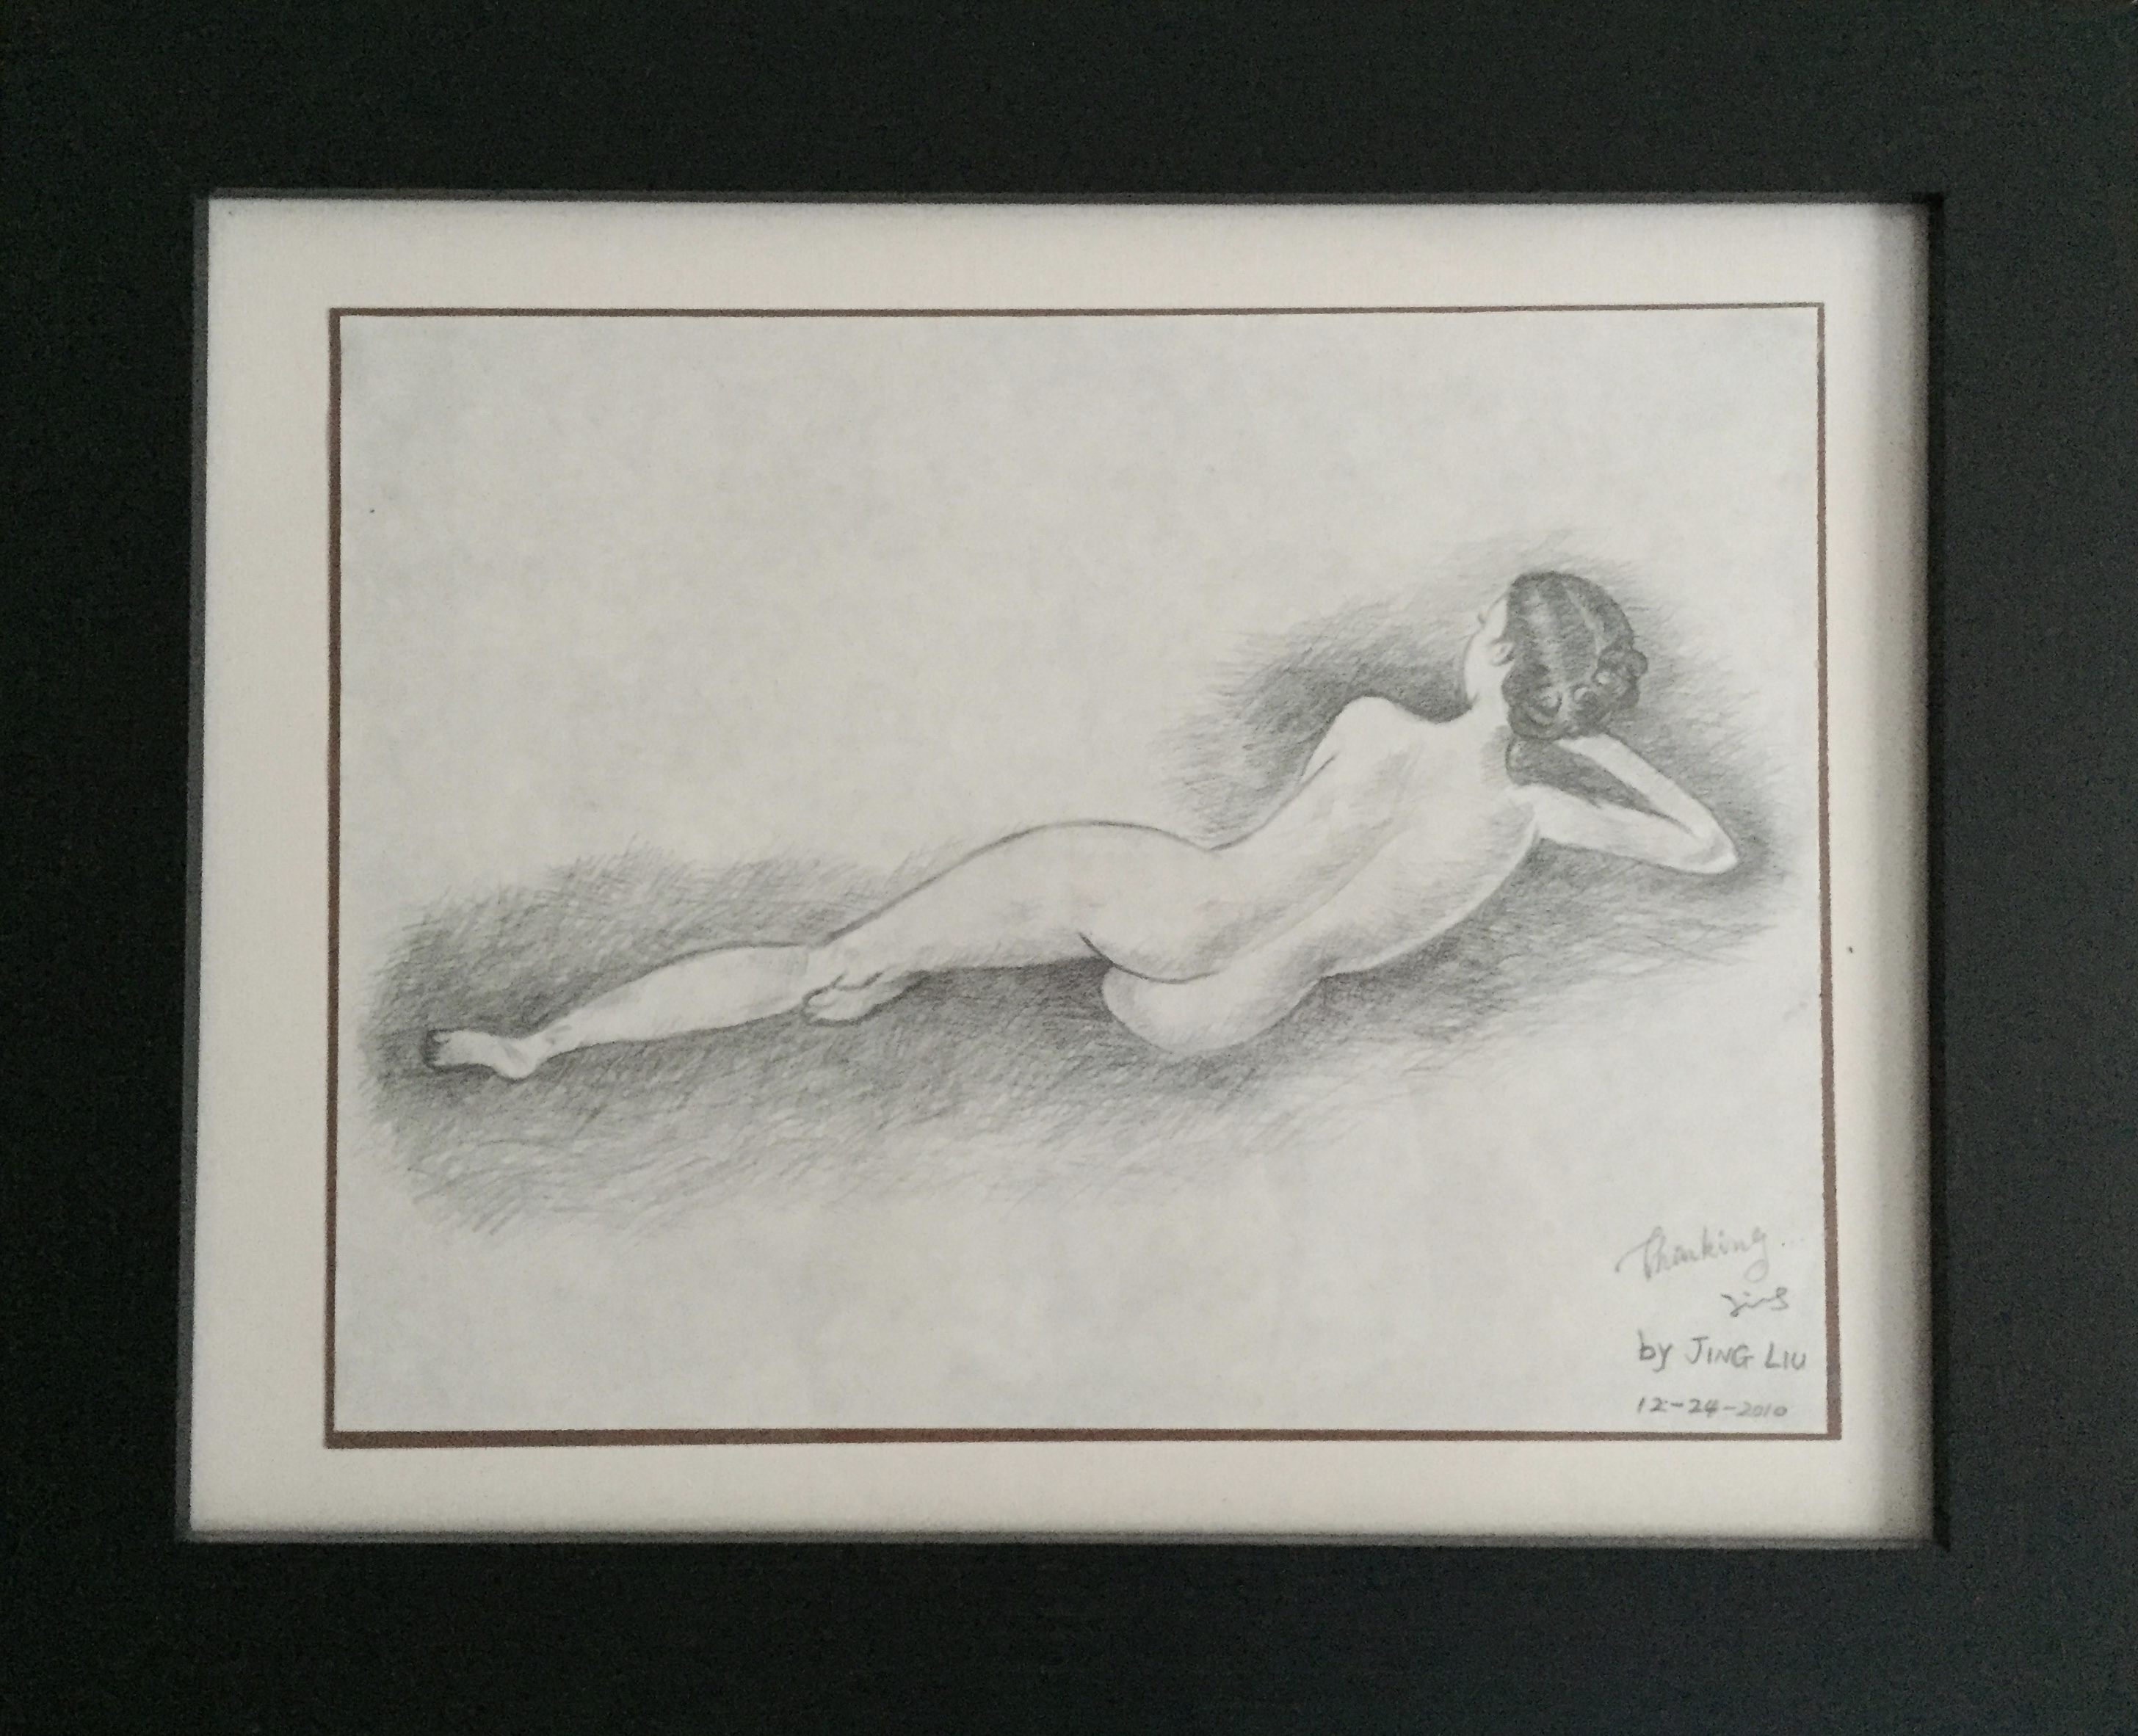 pencil drawing of a woman figure 1